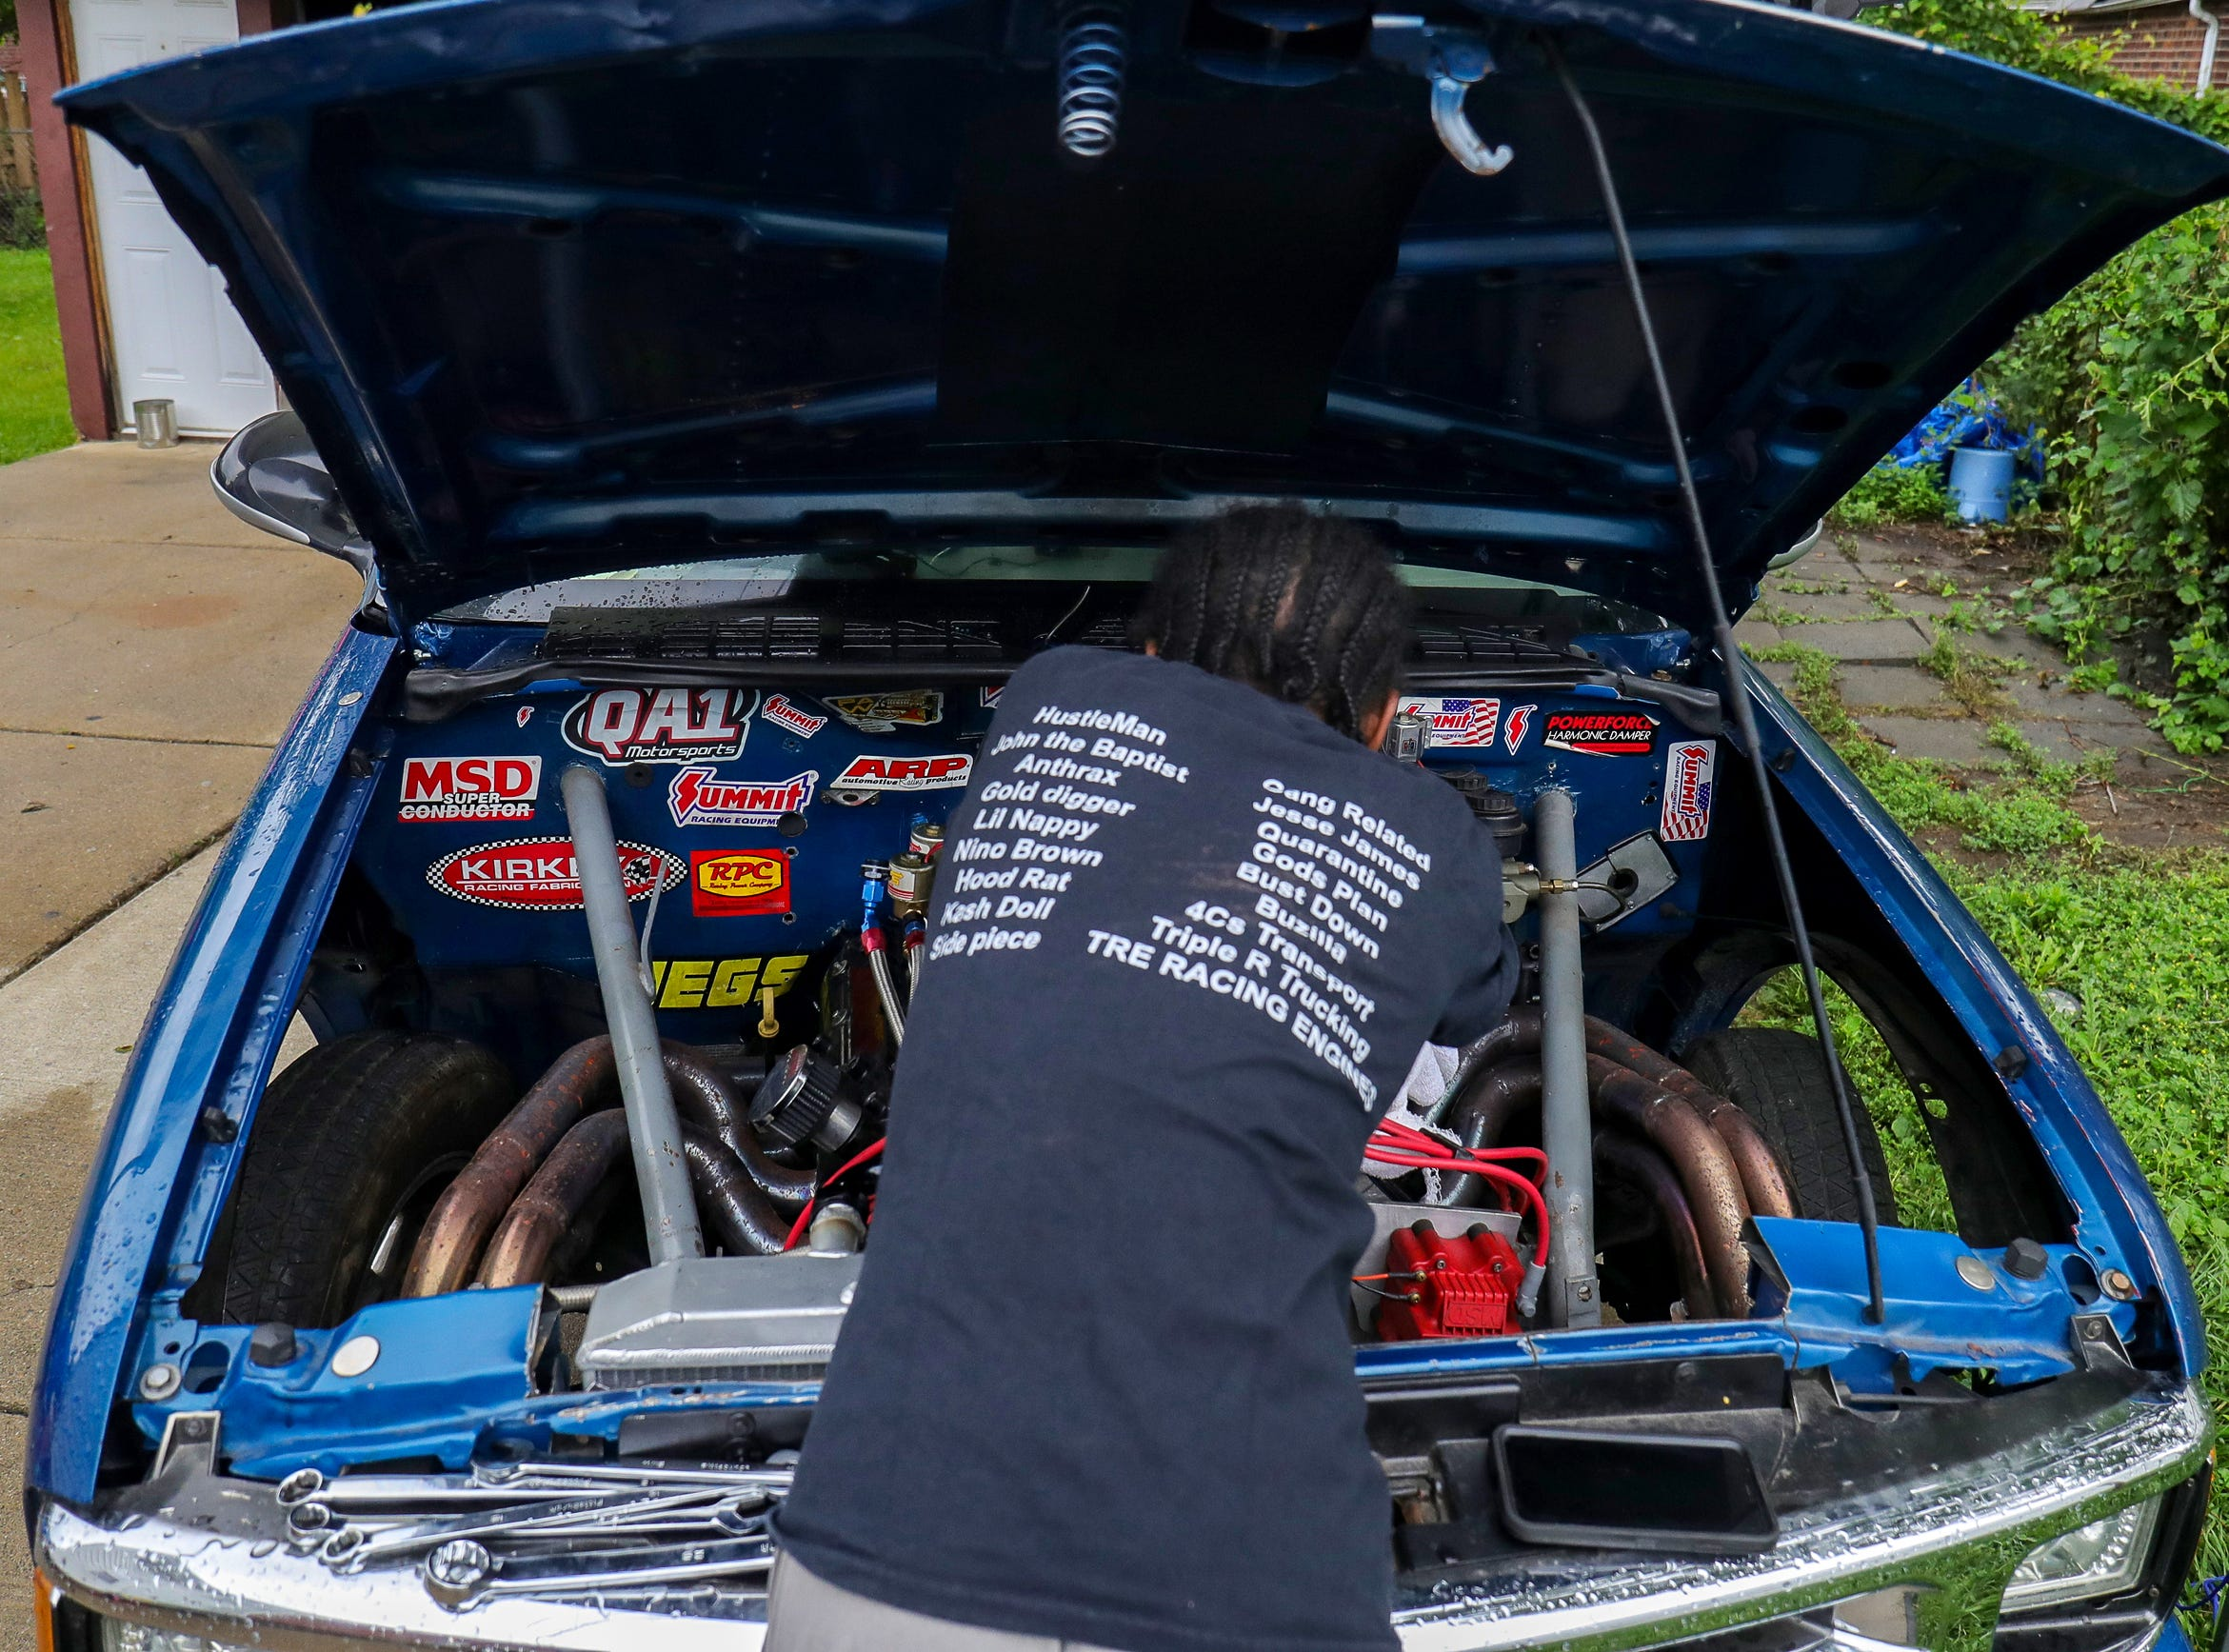 """Joemari Fox, 21, works on his 1997 Chevrolet S-10 in the backyard of his Eastpointe home ah he gets the car he named """"Payroll"""", ready for an event sponsored by Payso Productions at Lapeer International Dragway on Tuesday, July 13, 2021."""